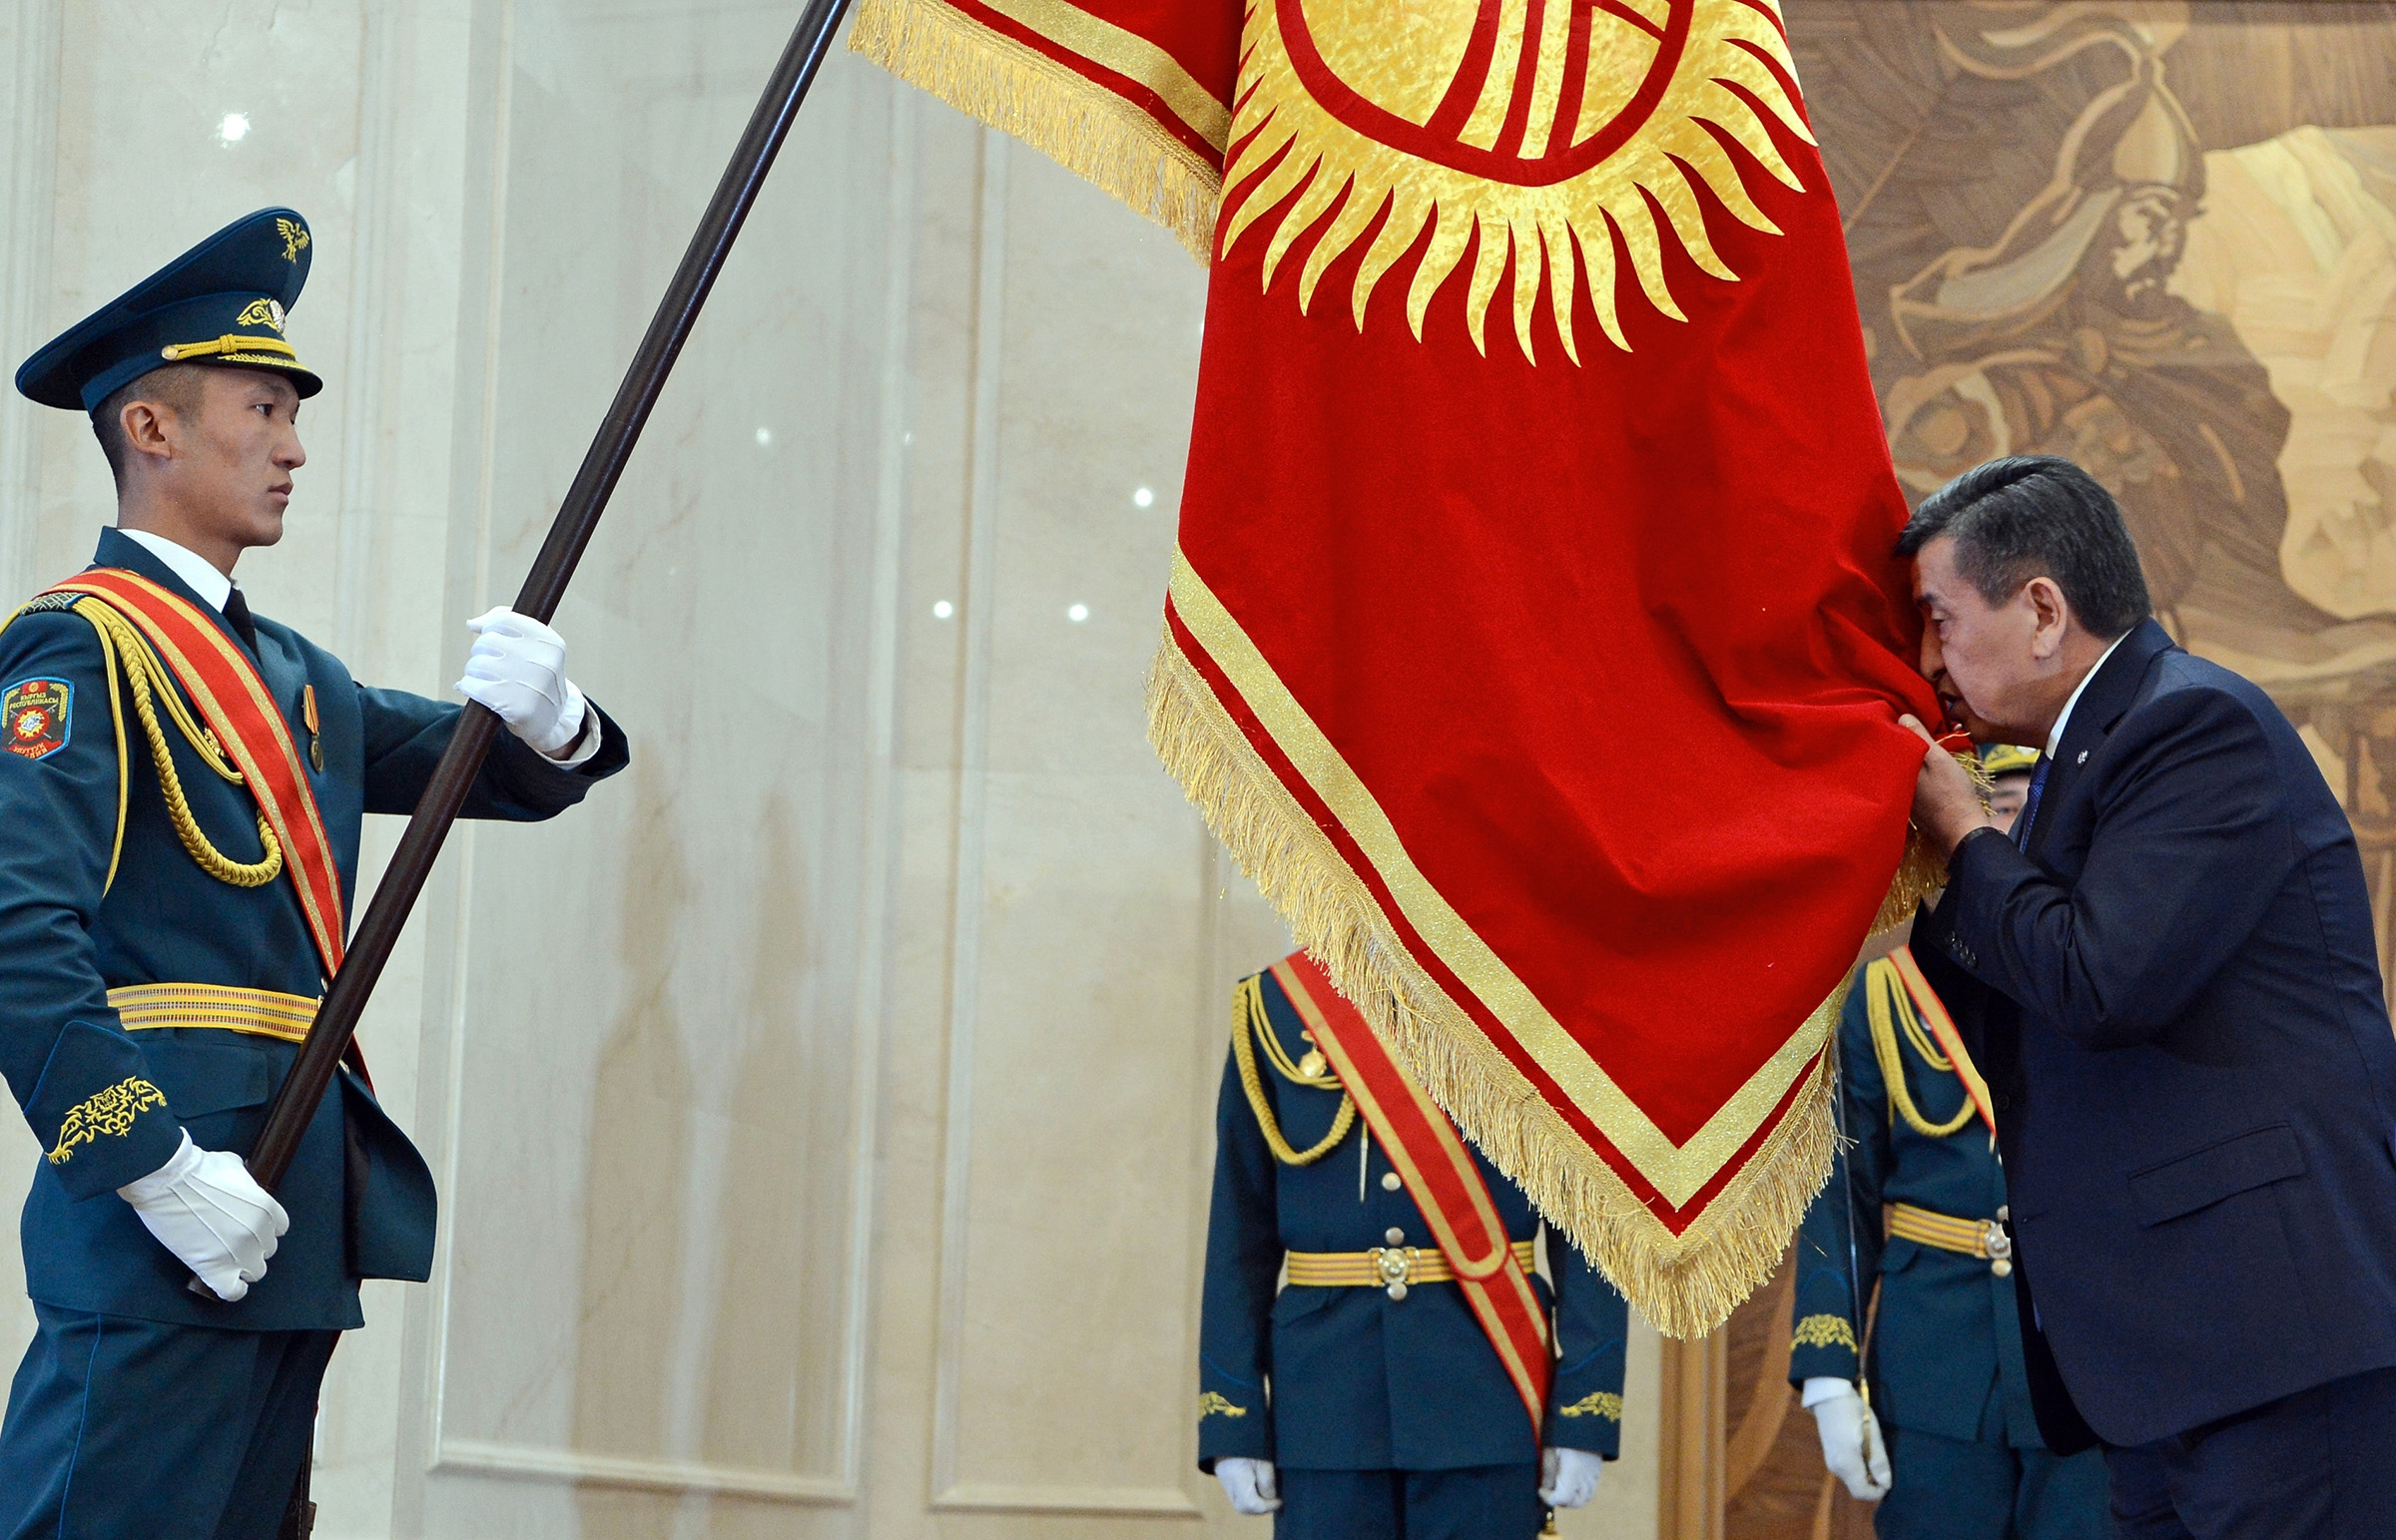 President Sooronbai Jeenbekov wants to be seen as a Kyrgyz patriot, but not at the cost of alienating China. (Photo: Kyrgyz presidential website)